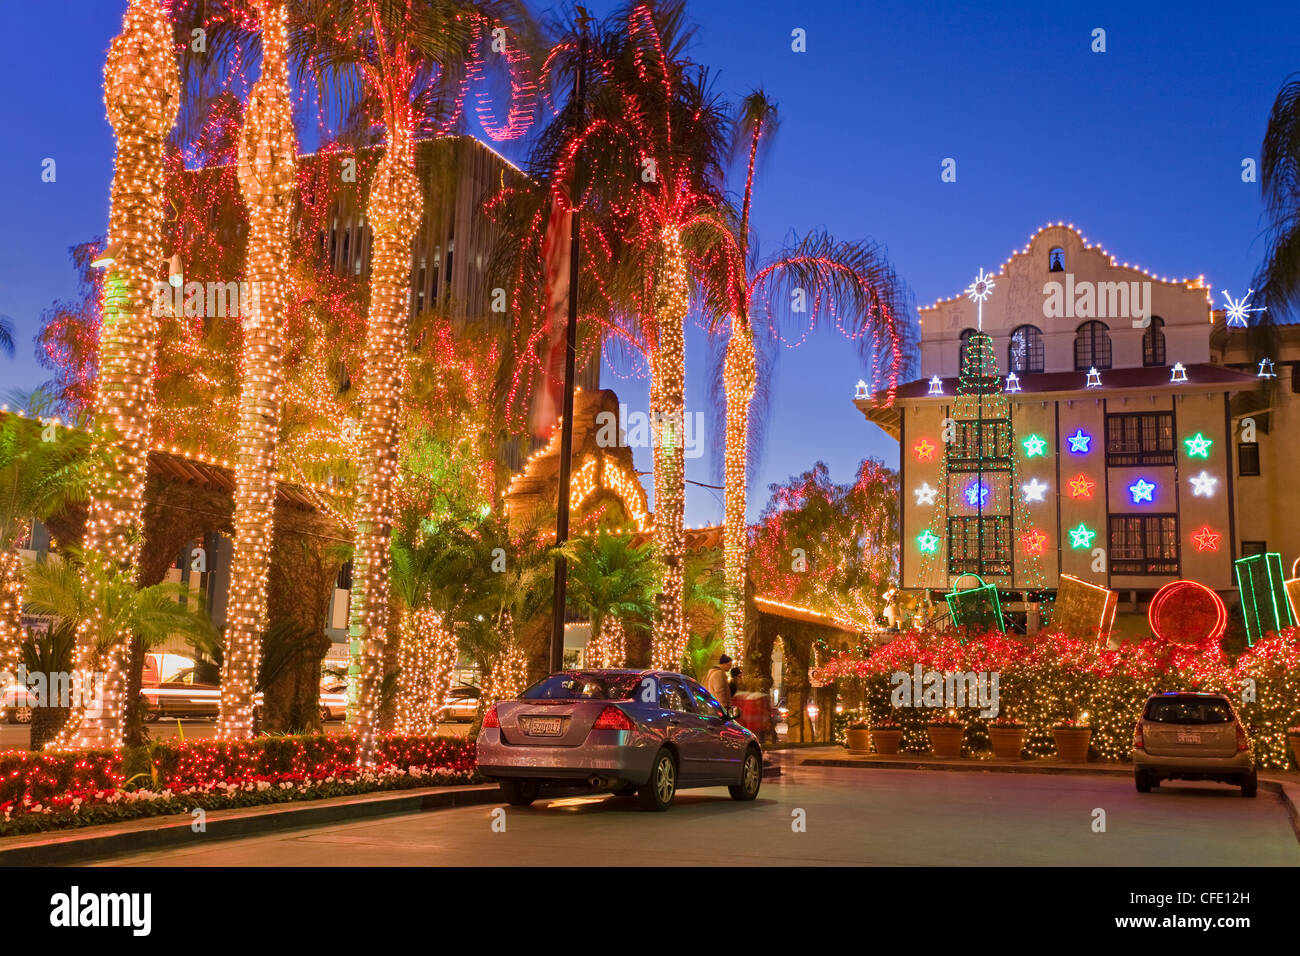 Mission Inn Stock Photos & Mission Inn Stock Images - Alamy